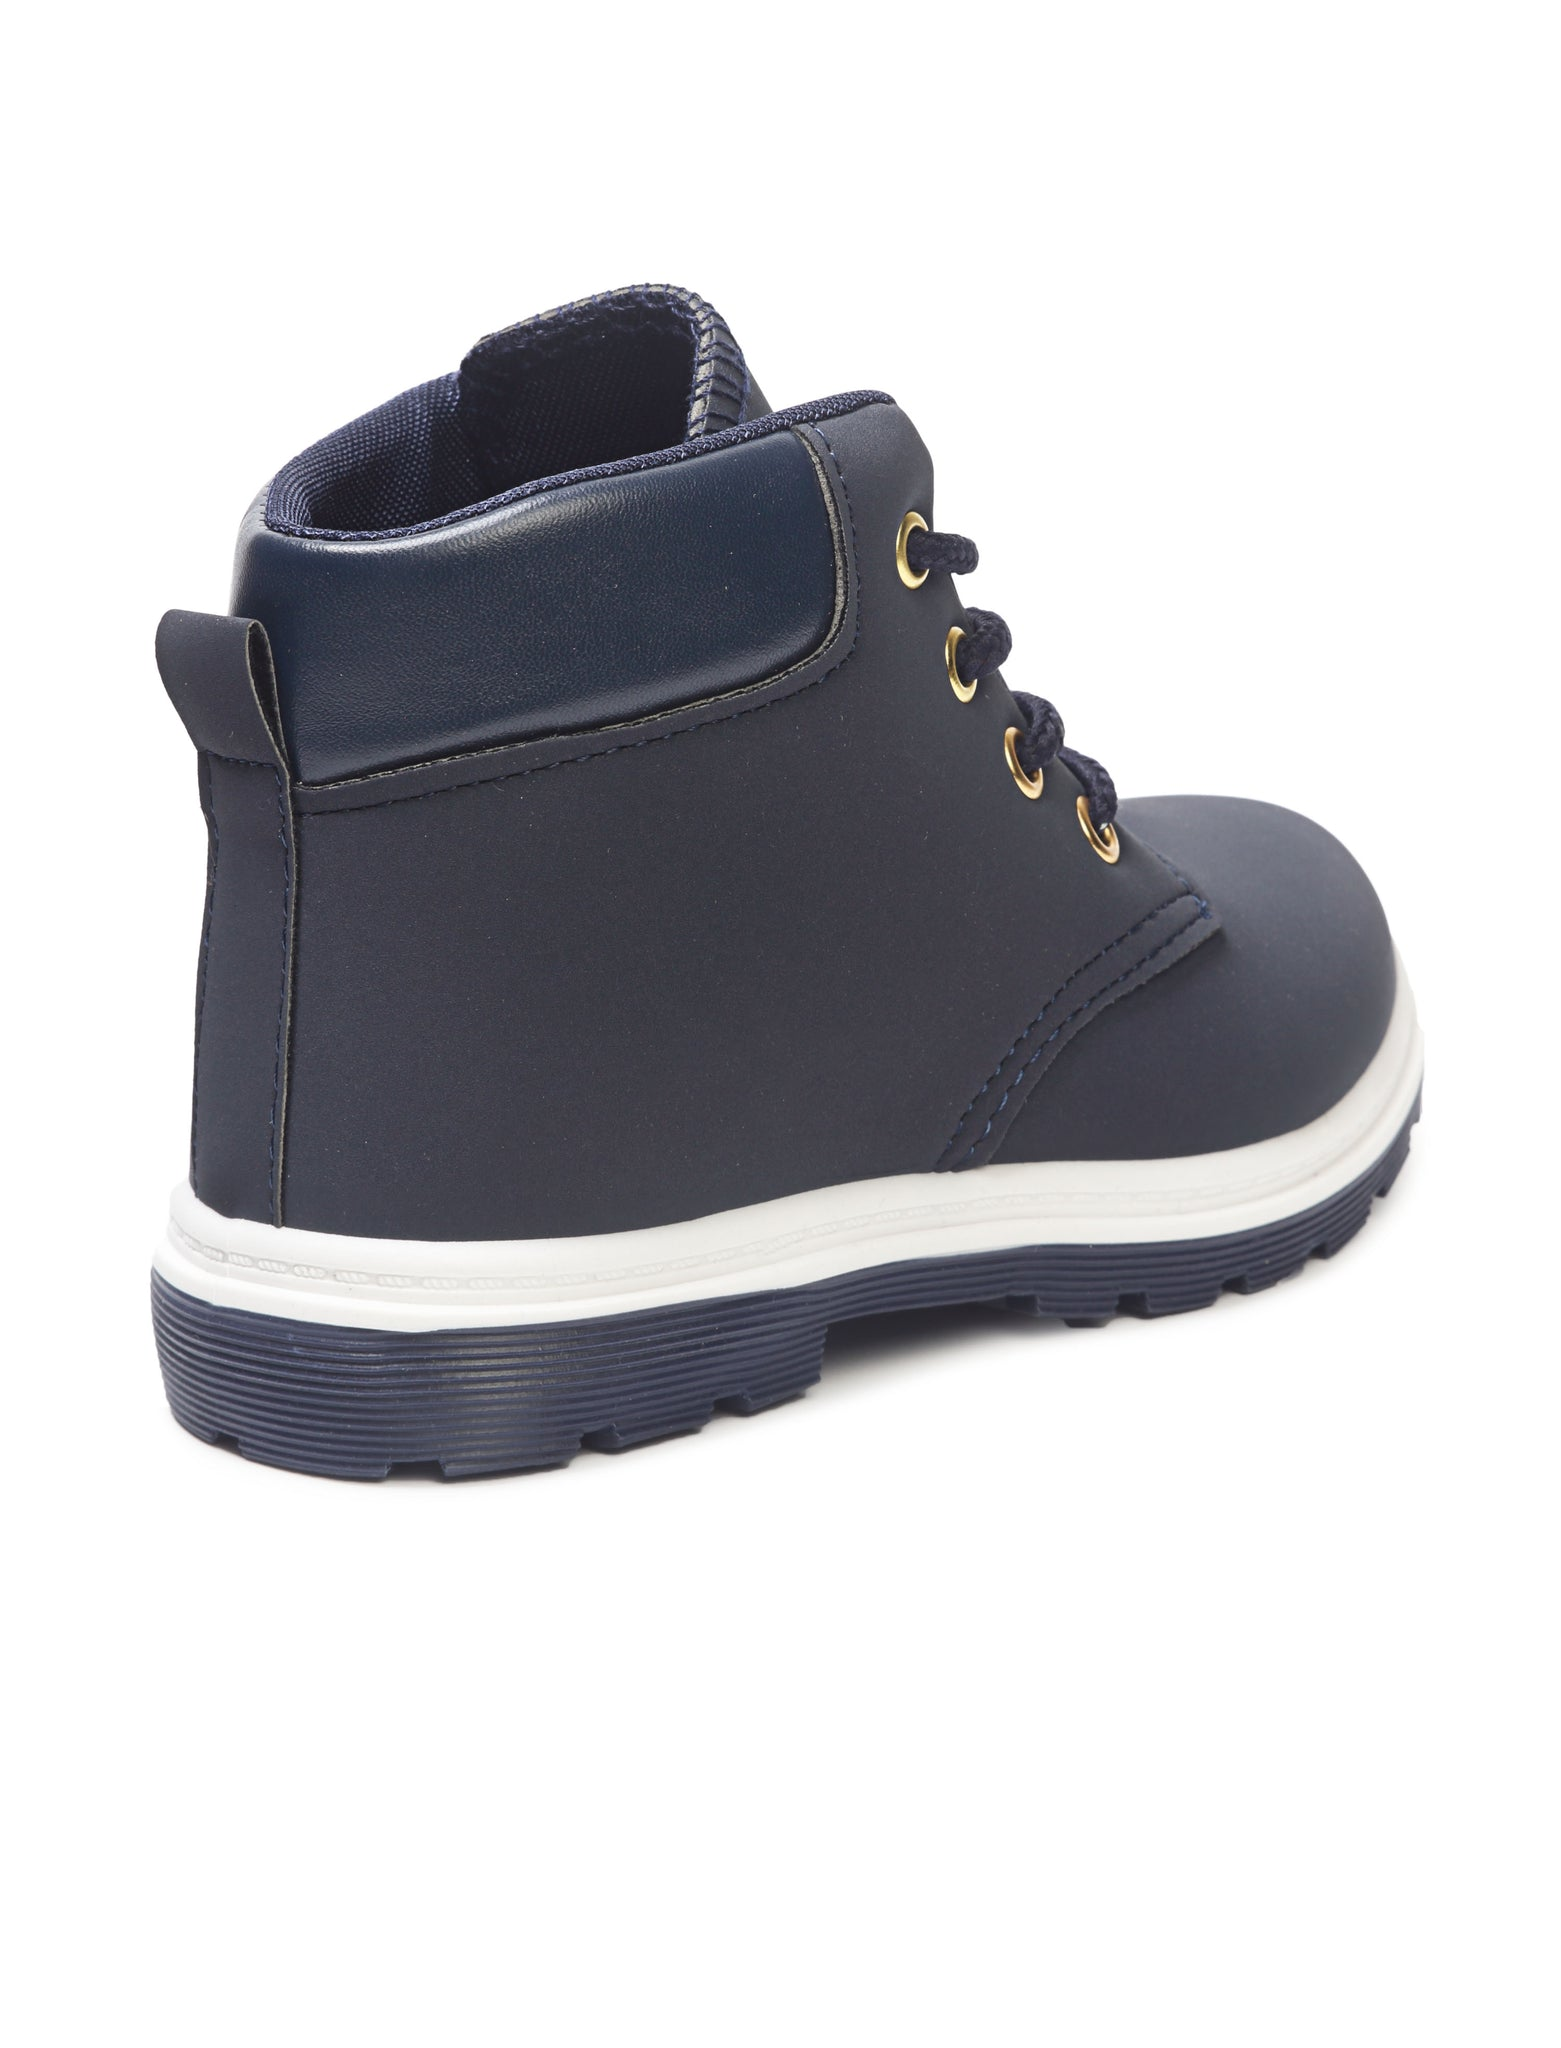 6c94016bddc8 Boys Ankle Boots - Navy – Planet54